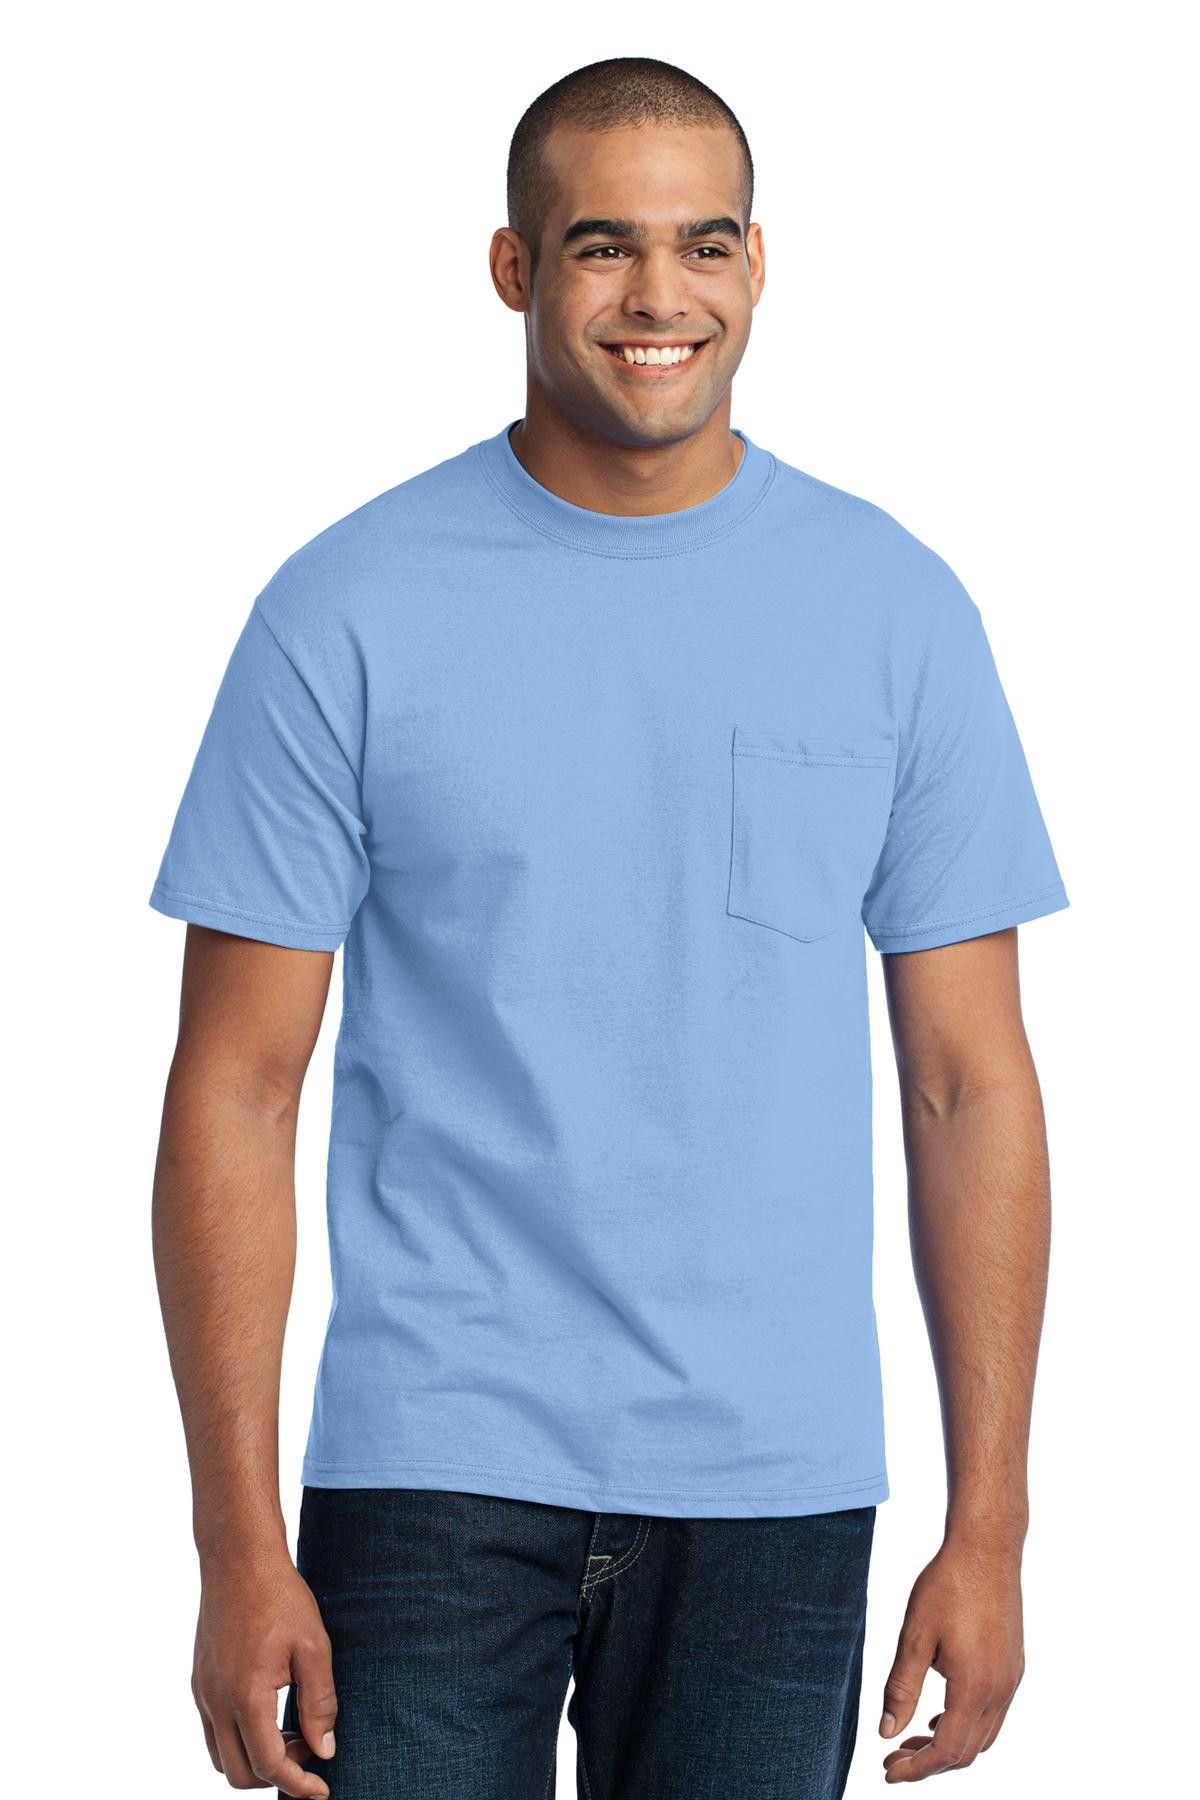 Port & Company Tall 50/50 Cotton/Poly T-Shirt with Pocket. PC55PT Light Blue